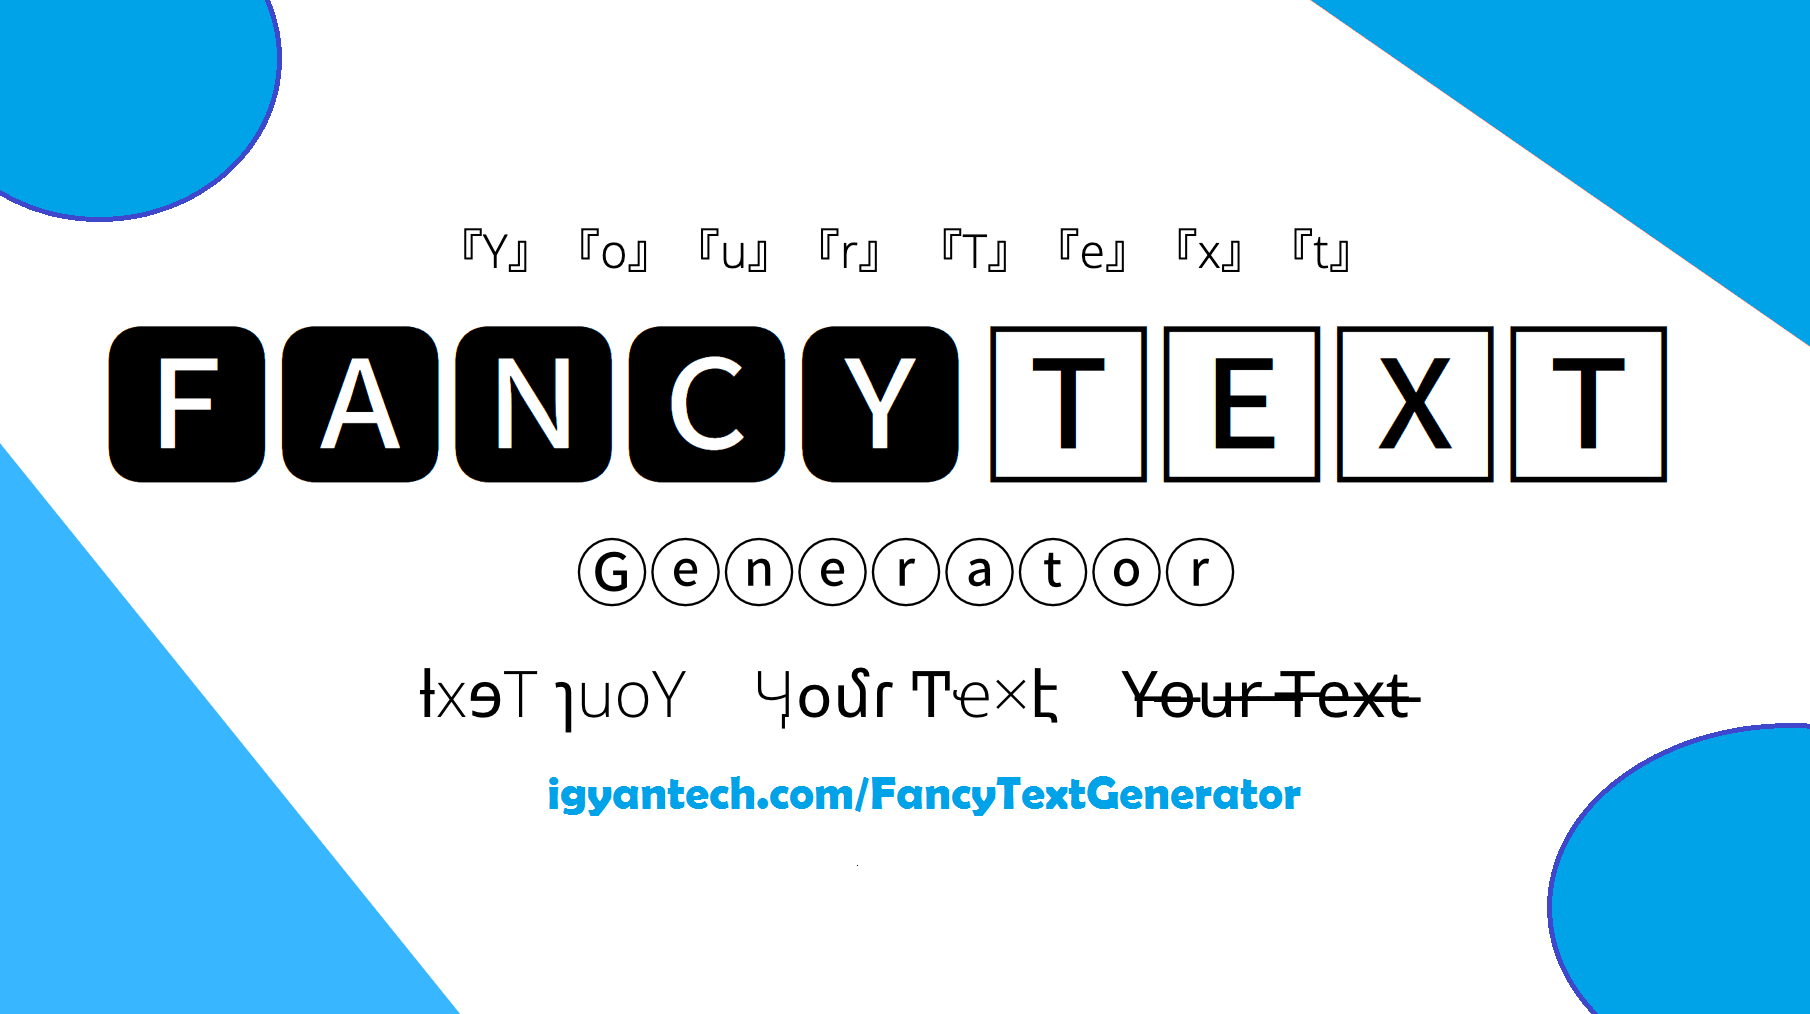 Fancy Text Generator 𝓬𝓸𝓹𝔂 𝓹𝓪𝓼𝓽𝓮 𝓒𝓸𝓸𝓵 𝓢𝓽𝔂𝓵𝓲𝓼𝓱 𝓕𝓸𝓷𝓽𝓼 Fancy Text Is In 2020 Text Generator Social Networking Apps Stylish Text Generator